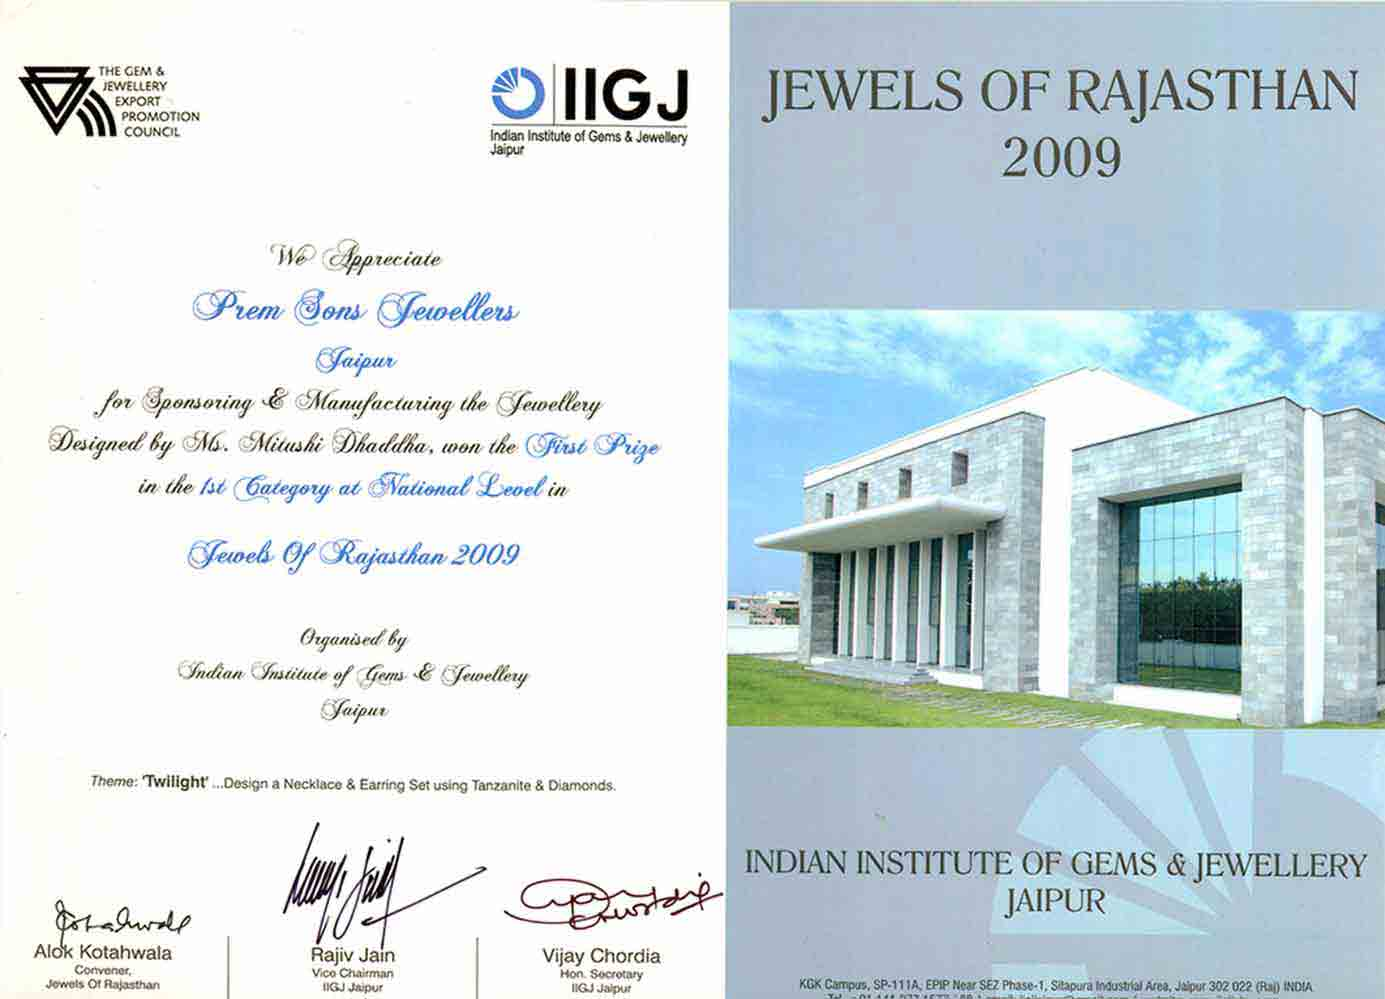 IIGJ appreciate premsons jewellers